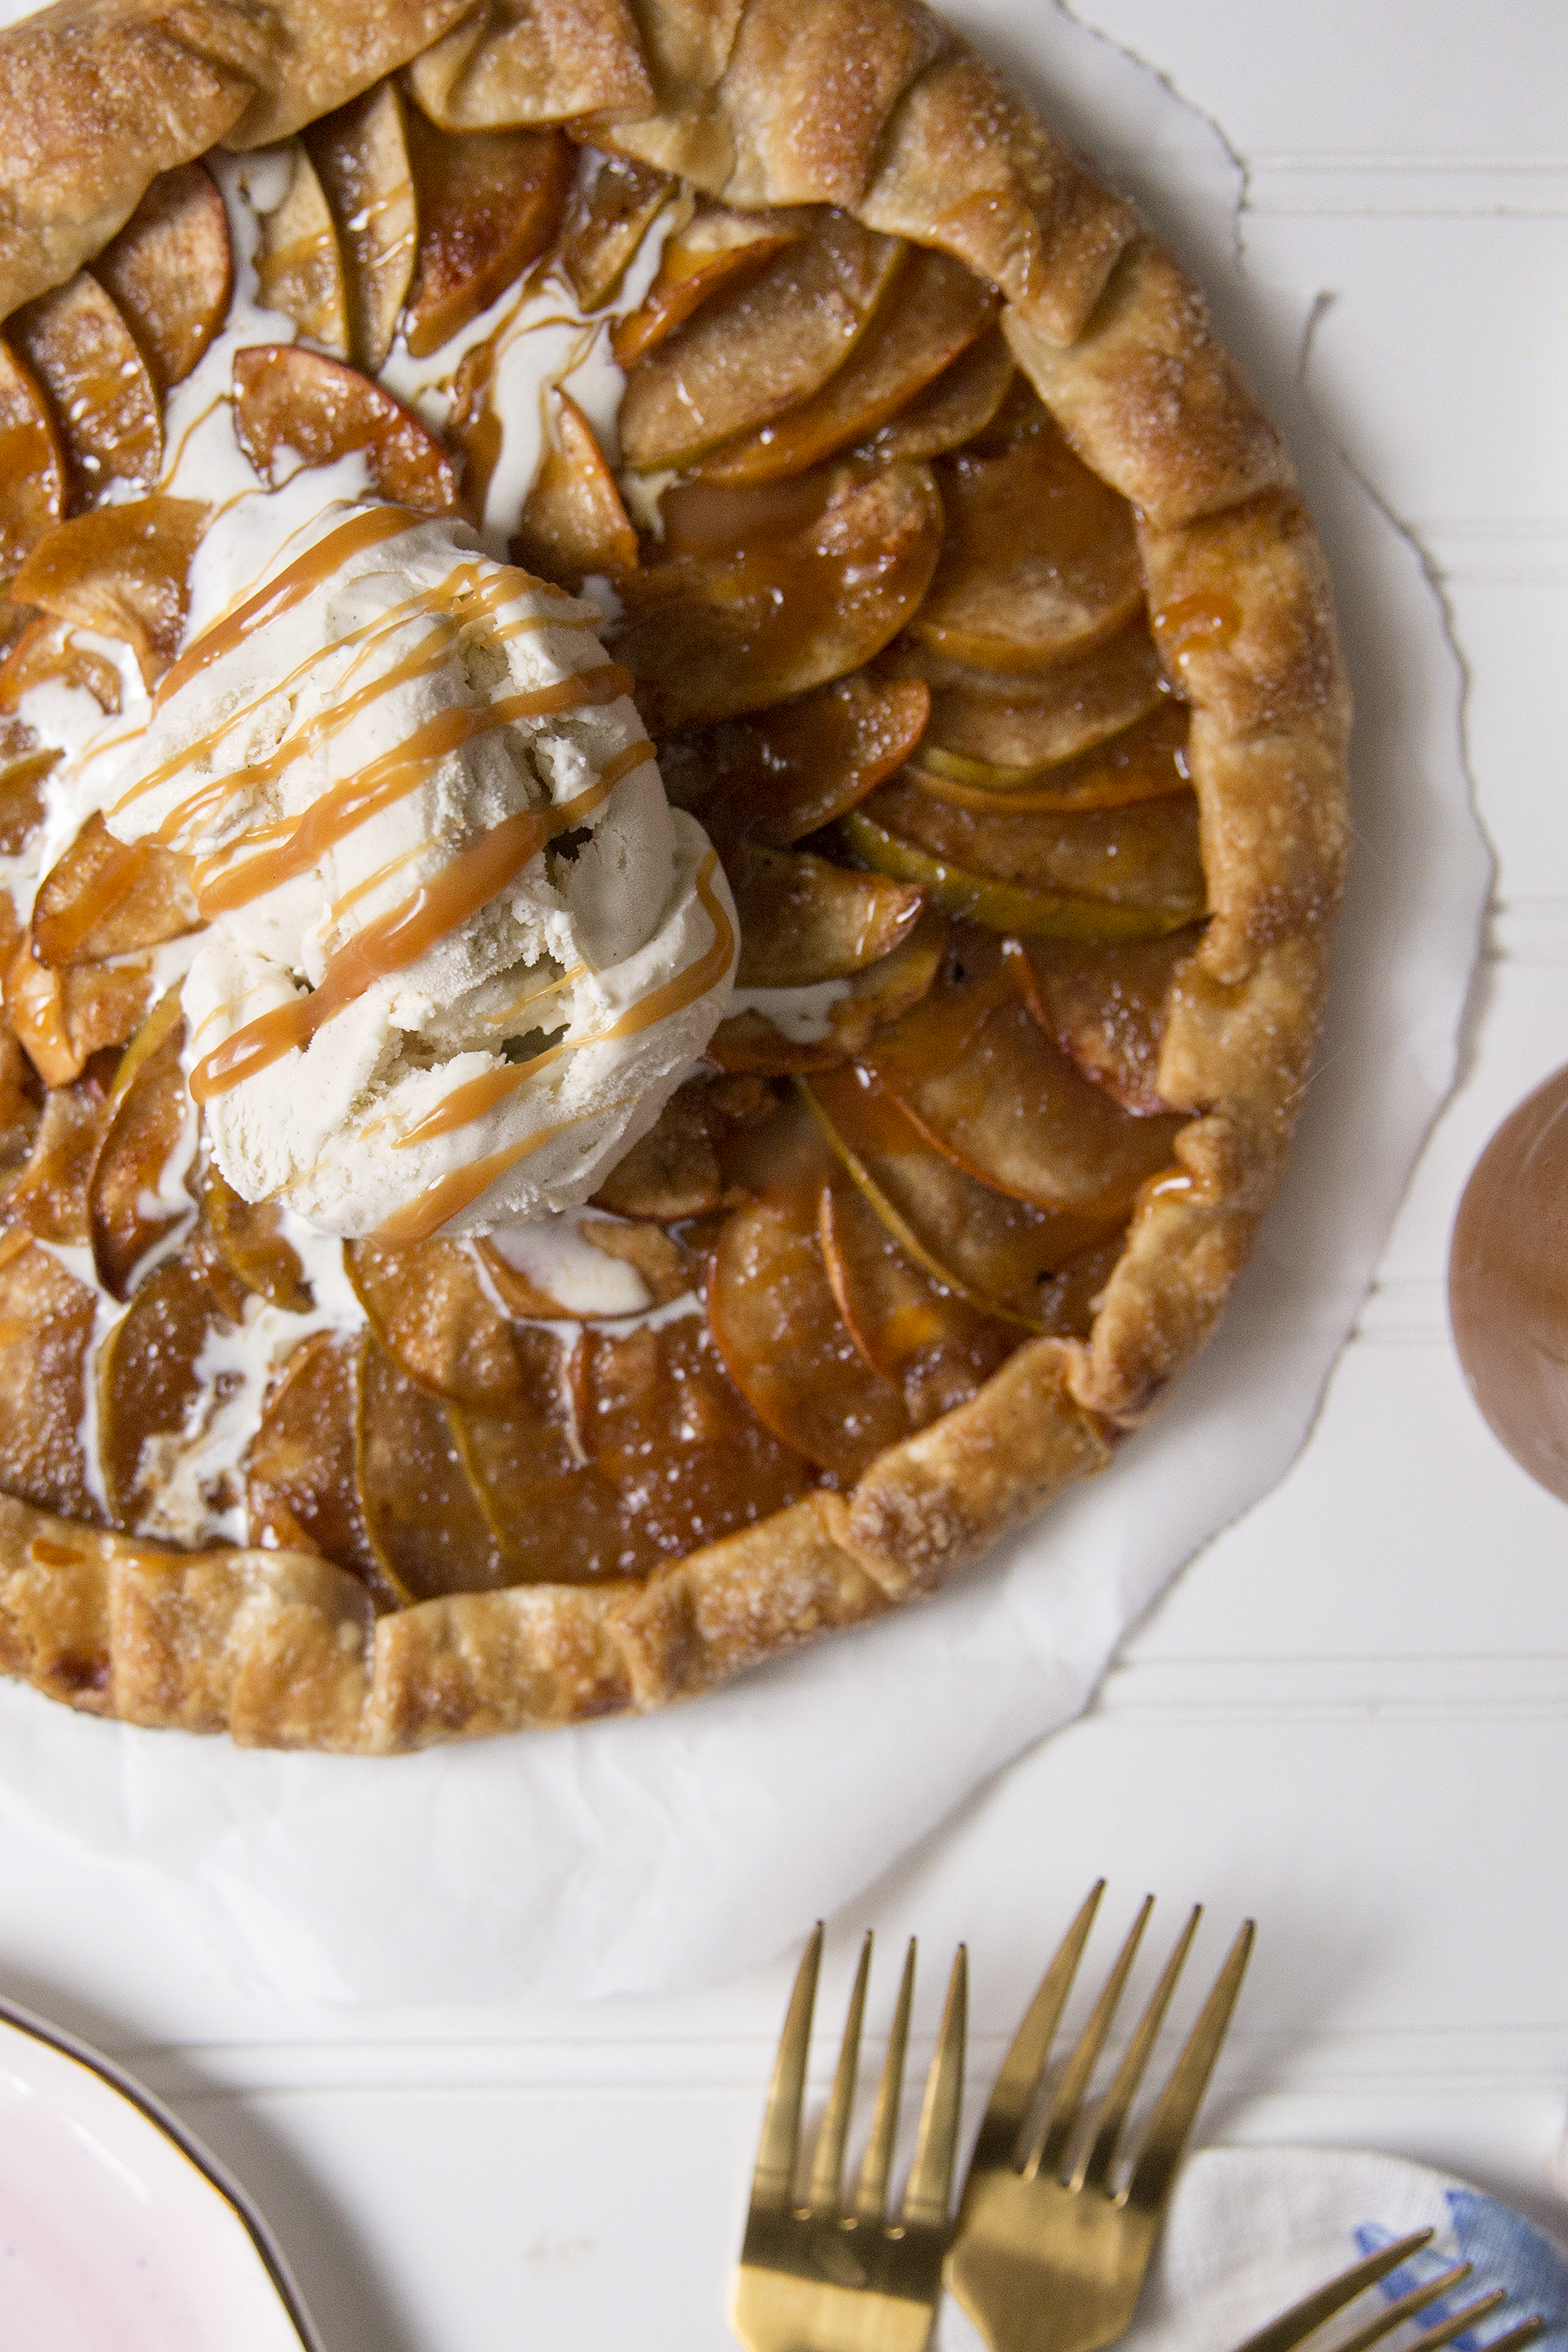 Apple Galette with homemade caramel sauce. Unusuallylovely.com